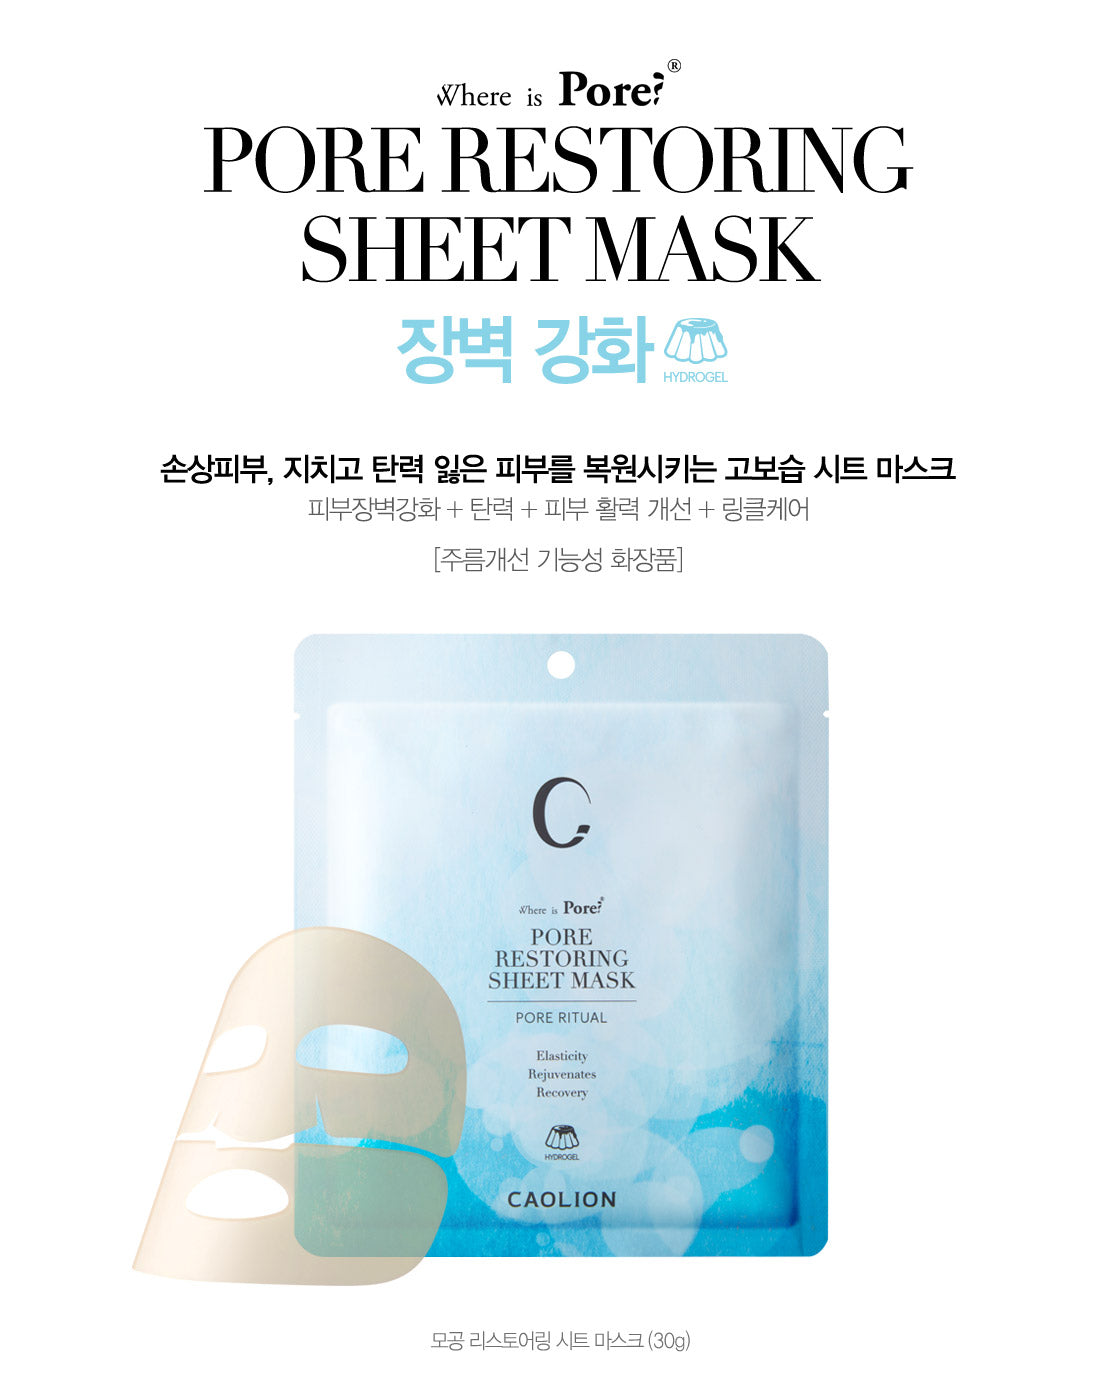 Caolion - Pore Restoring Sheet Mask